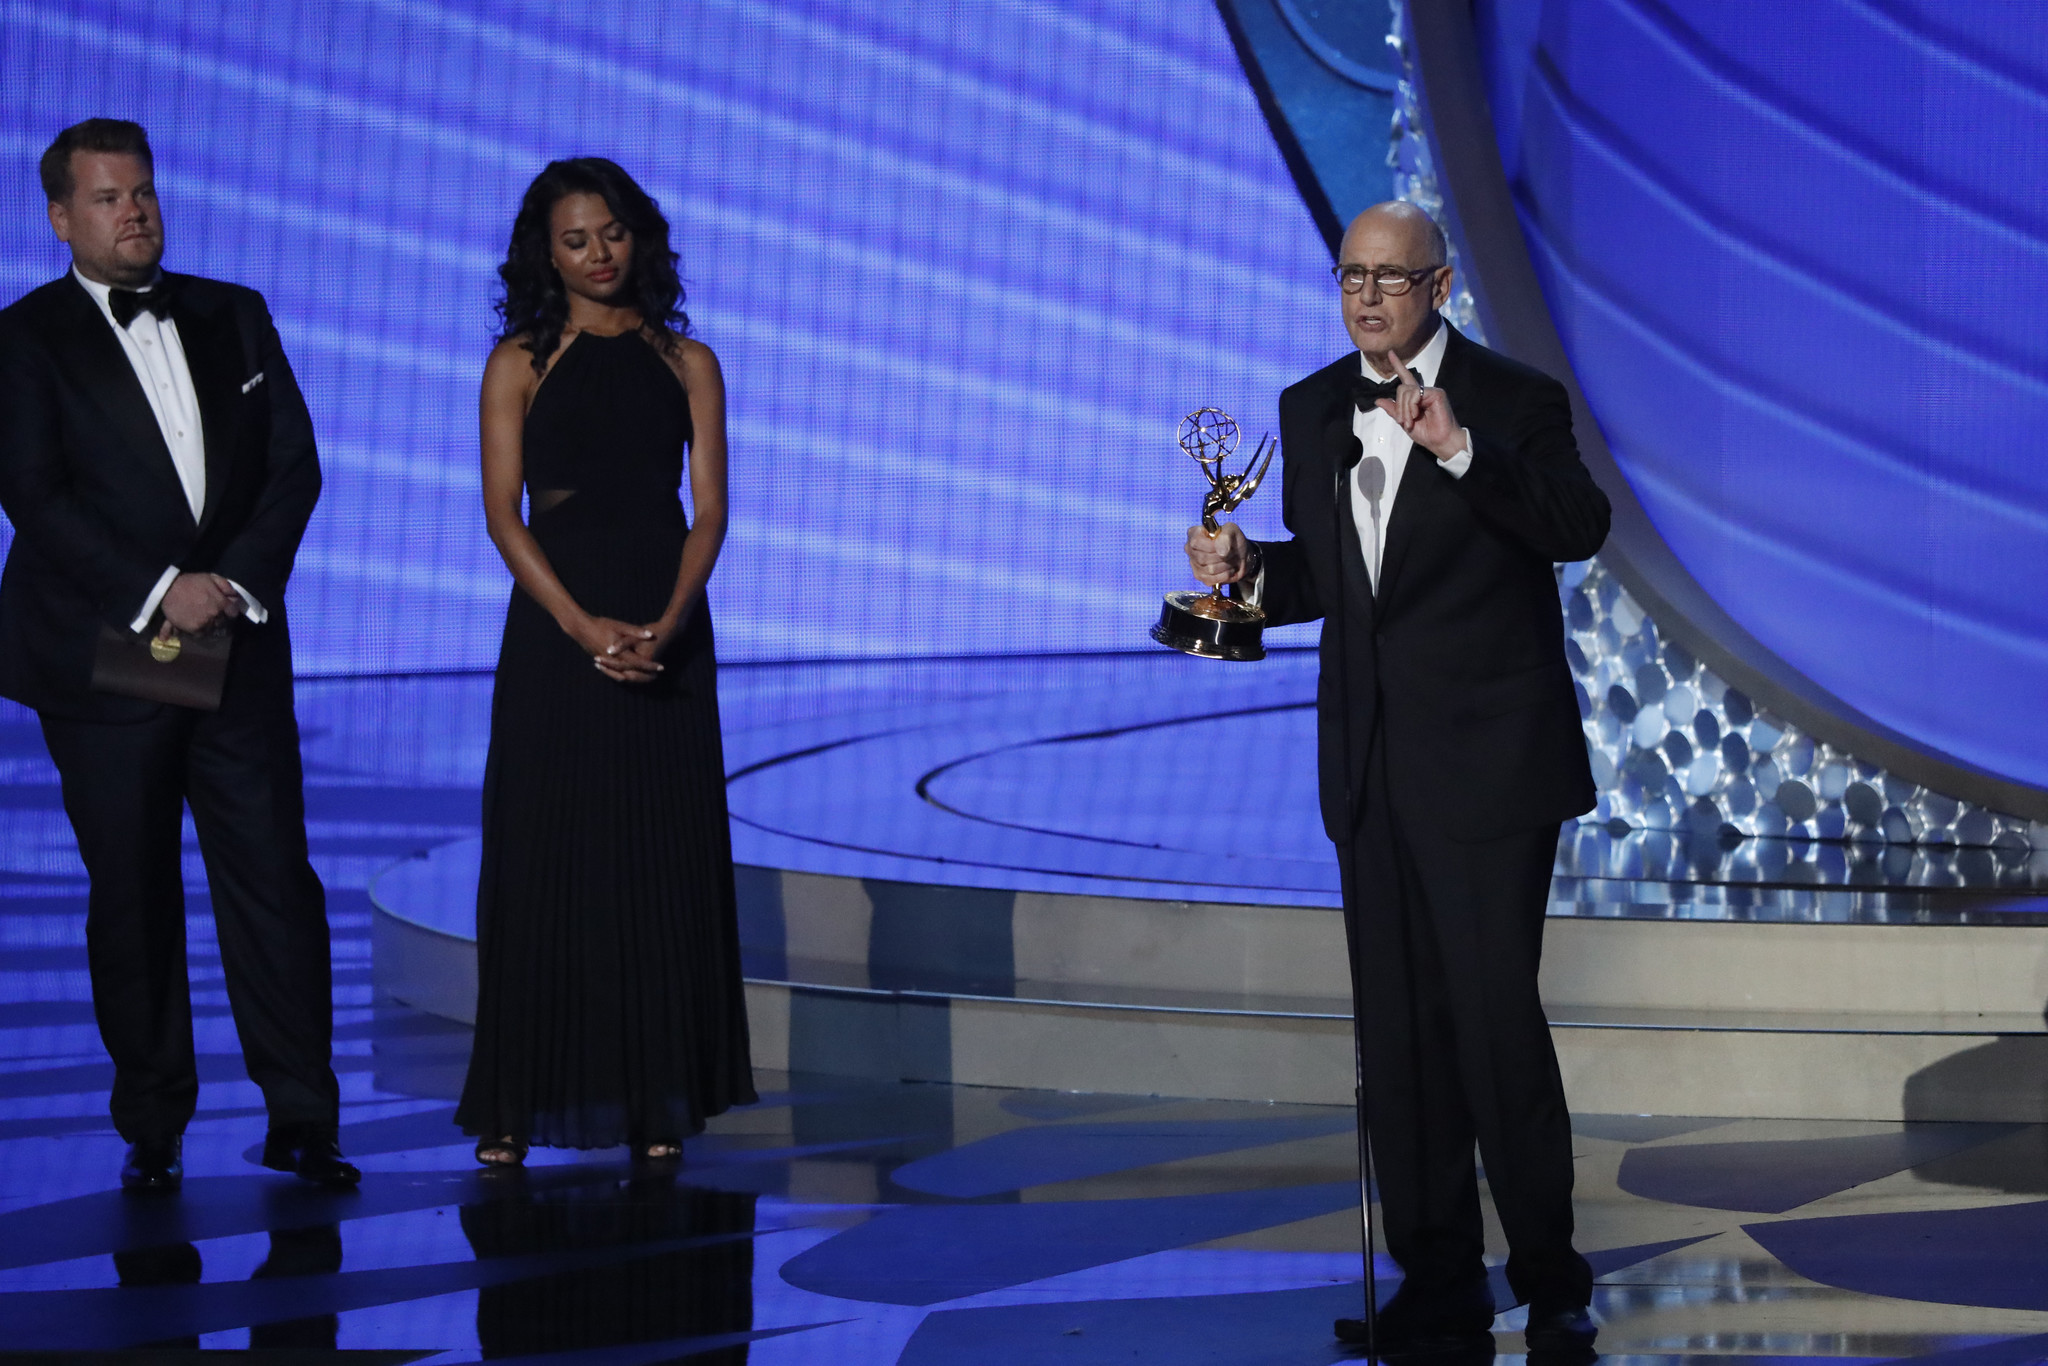 Jeffrey Tambor giving his Emmy acceptance speech in 2016.